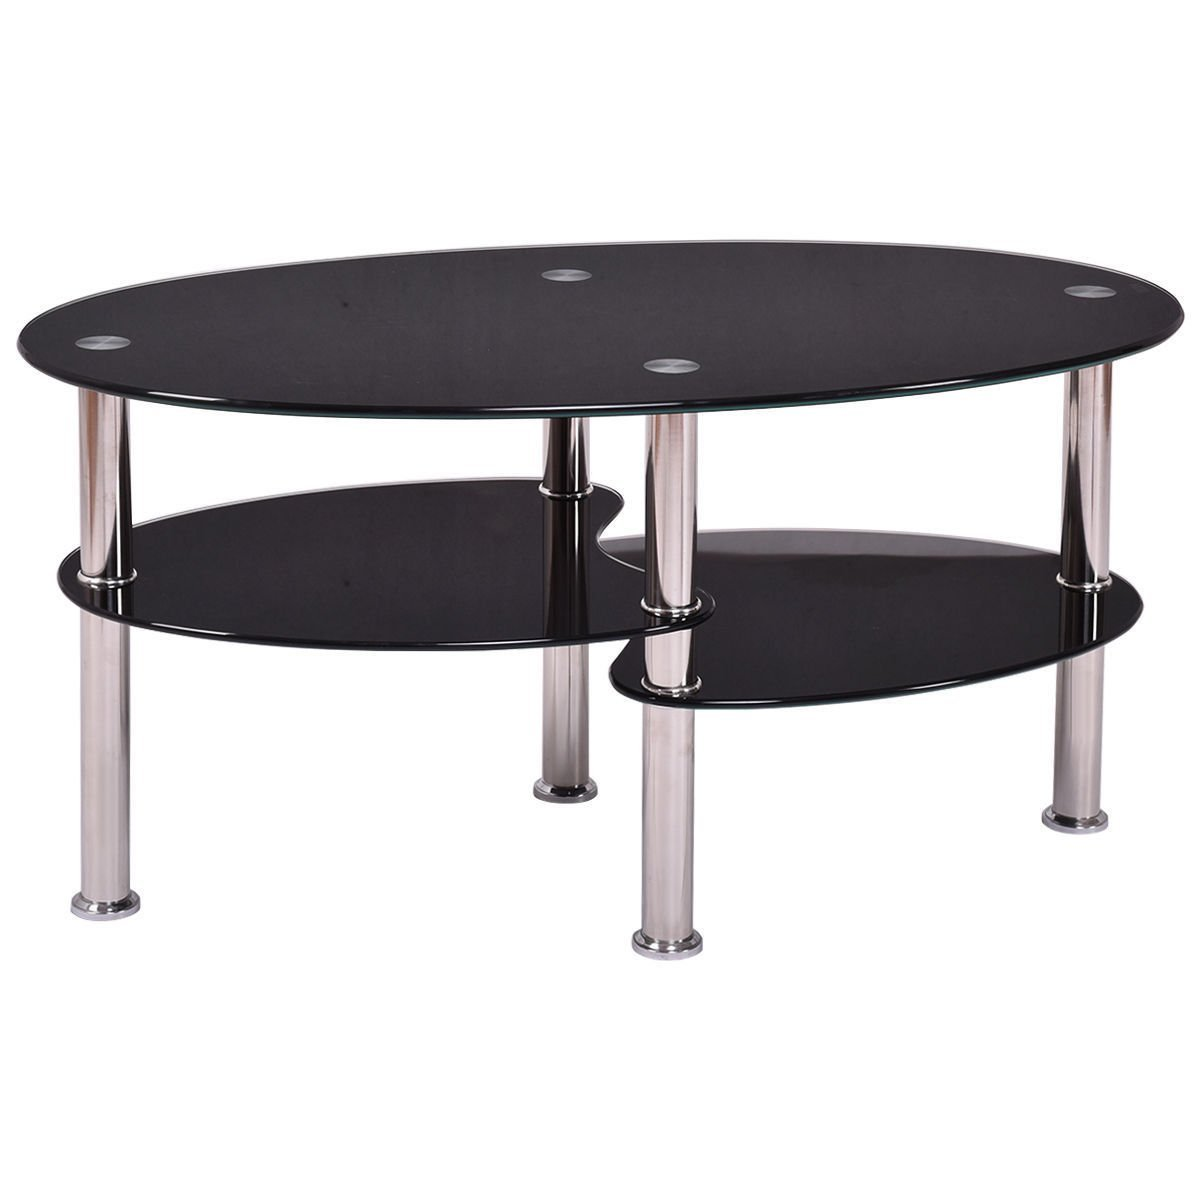 New black glass oval side coffee table shelf chrome base living room furniture 654554640696 ebay Black glass side tables for living room